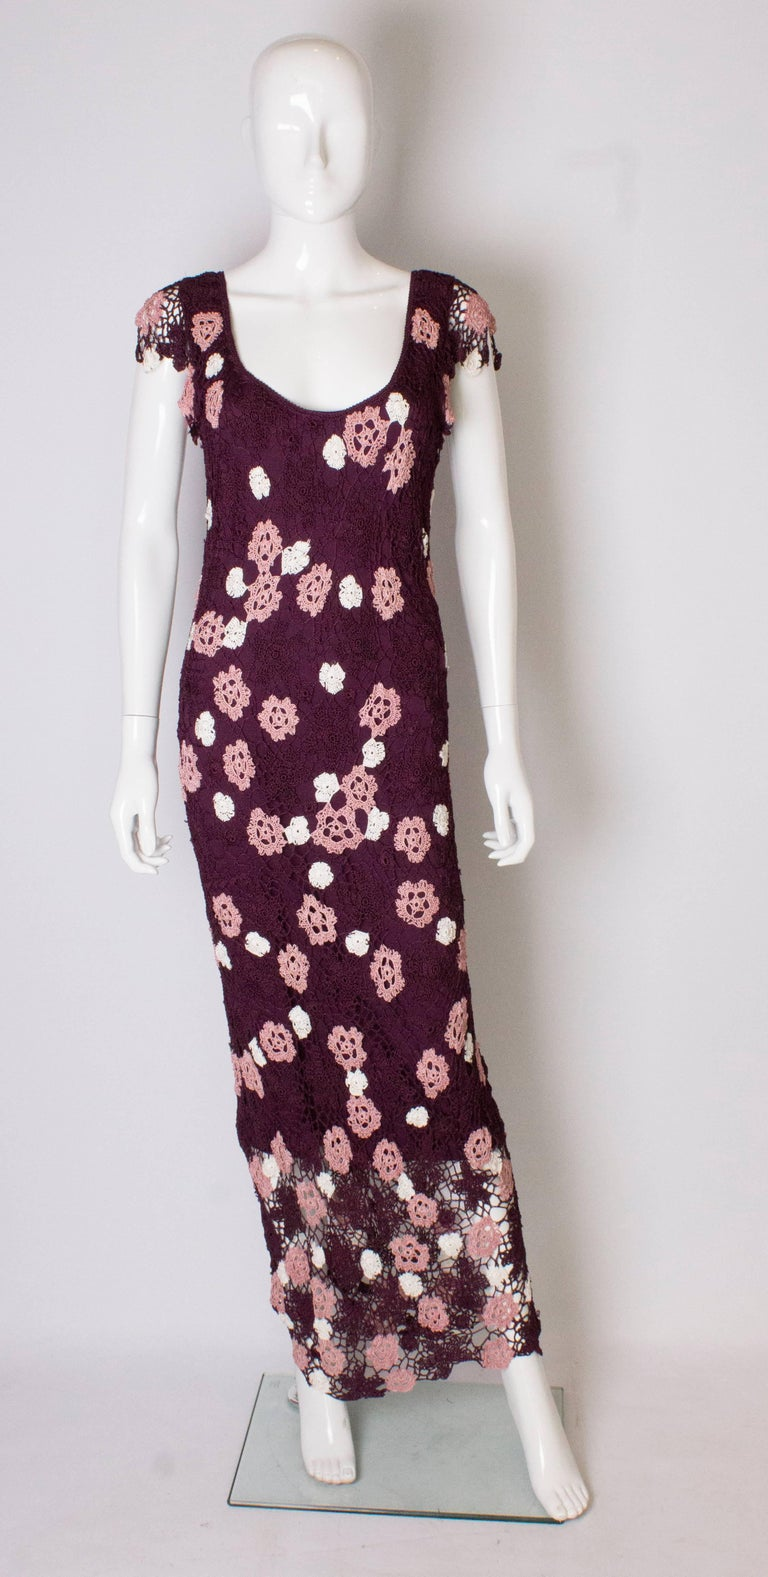 An easy to wear vintage crochet dress, that can be dressed up or down. The dress has a scoop neck , back and front, with cap like sleeves. It is a mixture of burgundy, cream and pink, and is fully lined.